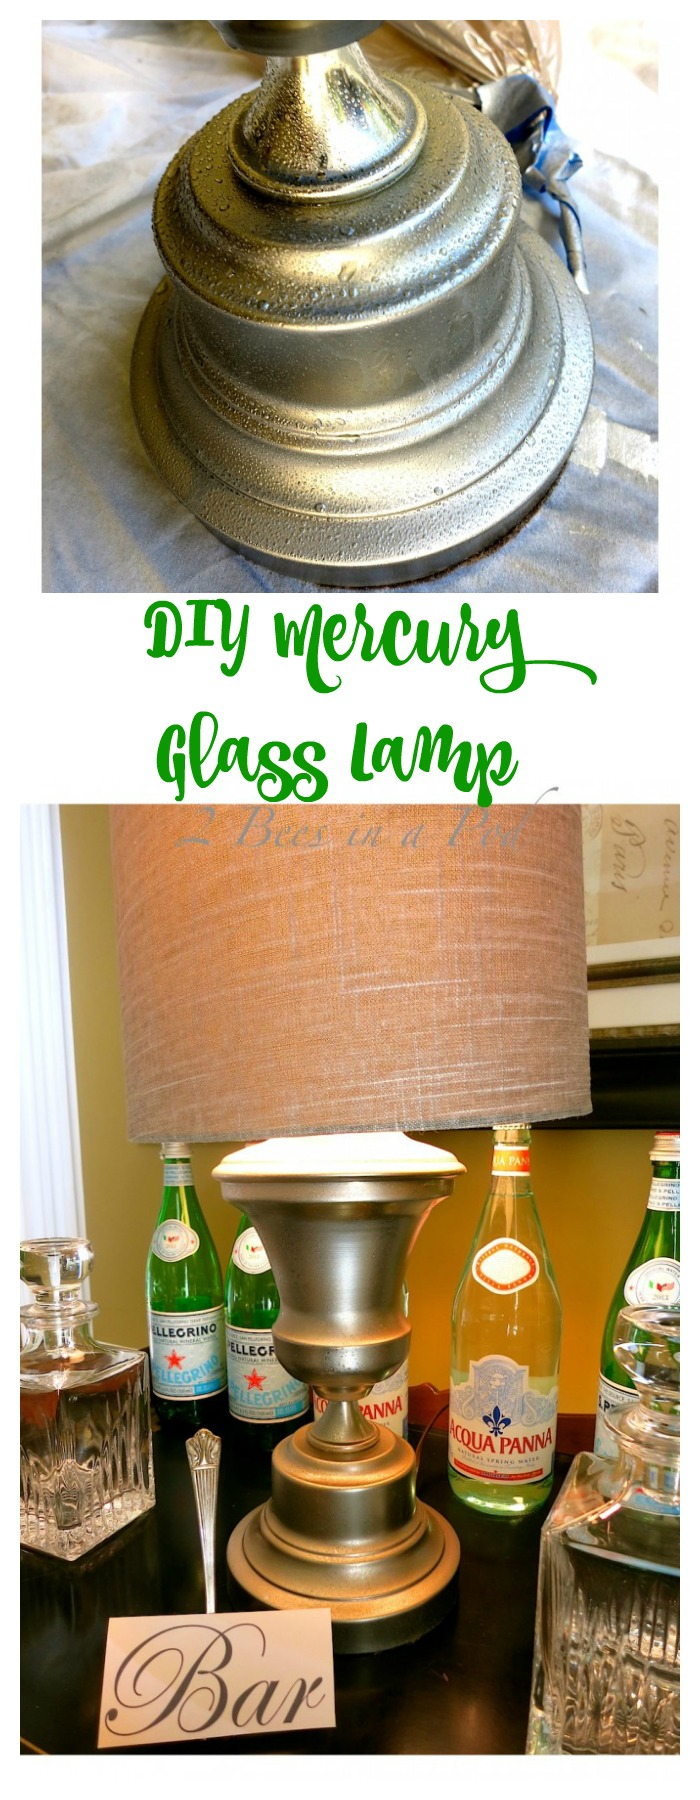 Looking glass spray paint will give you the instant look of vintage mercury glass.